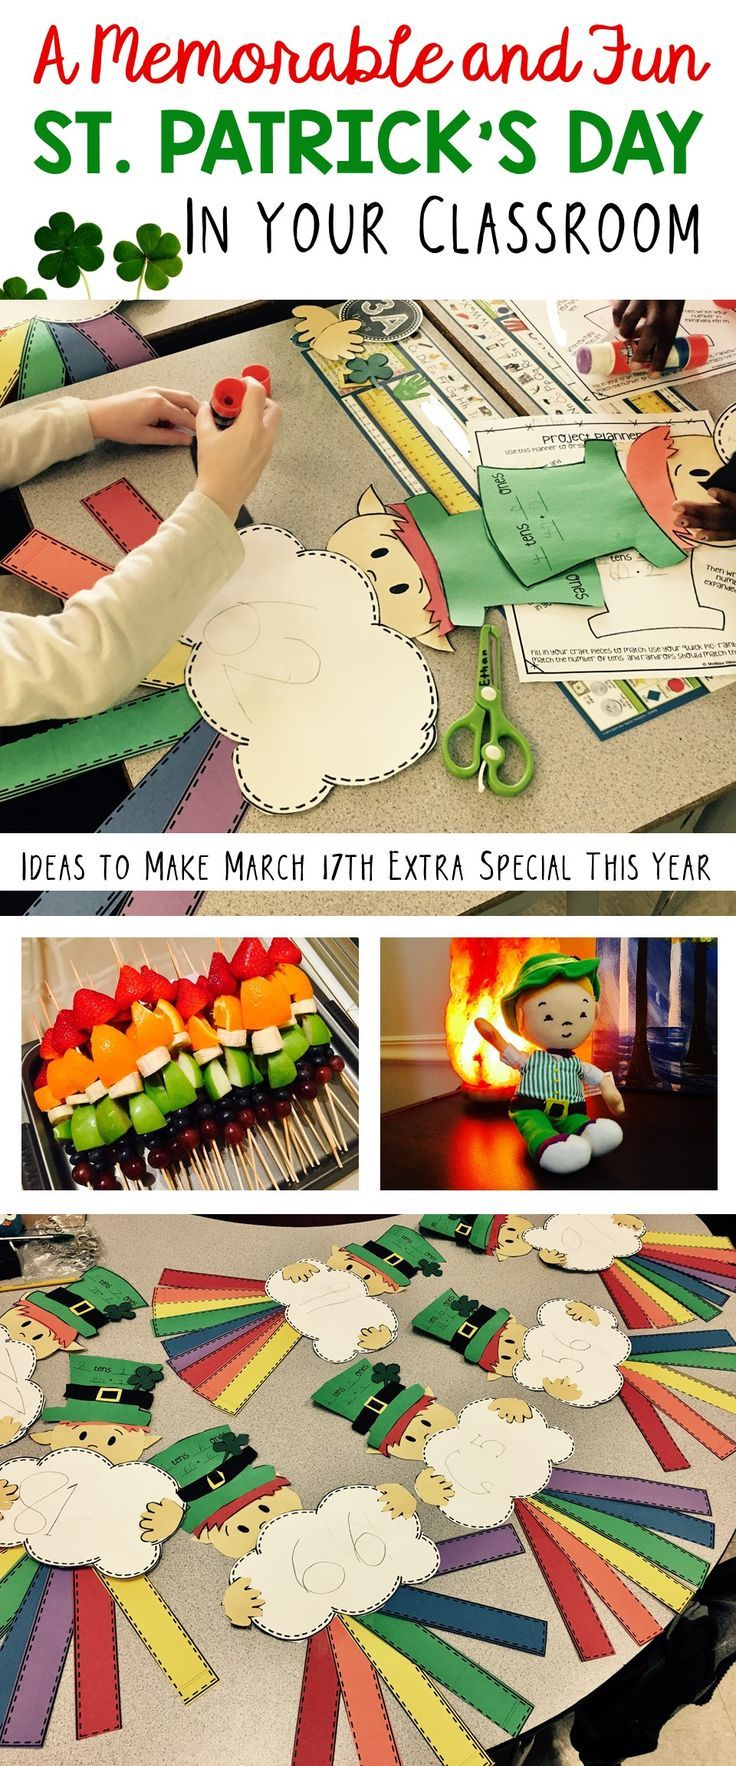 So many great ideas for having fun with students on St. Patrick's Day! Crafts for kids, leprechaun mischief, ideas, activities, resources, and a silly little guy name Silly McGilly!